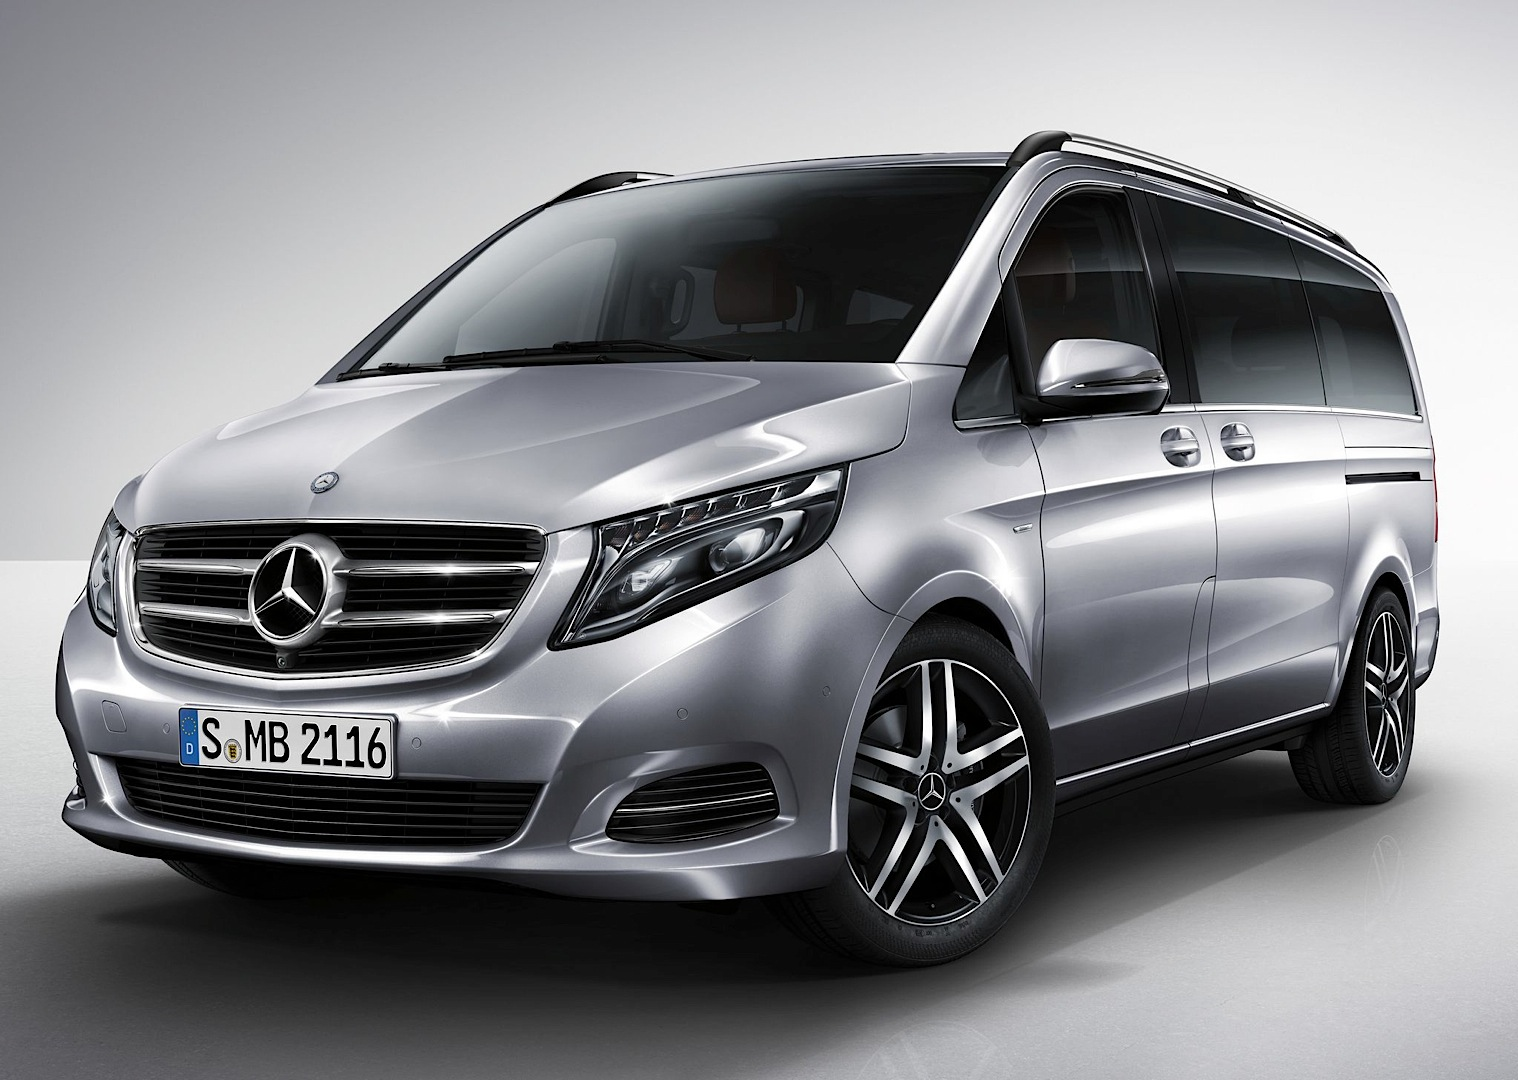 2015 mercedes benz v class edition 1 gets detailed photo gallery autoevol. Cars Review. Best American Auto & Cars Review